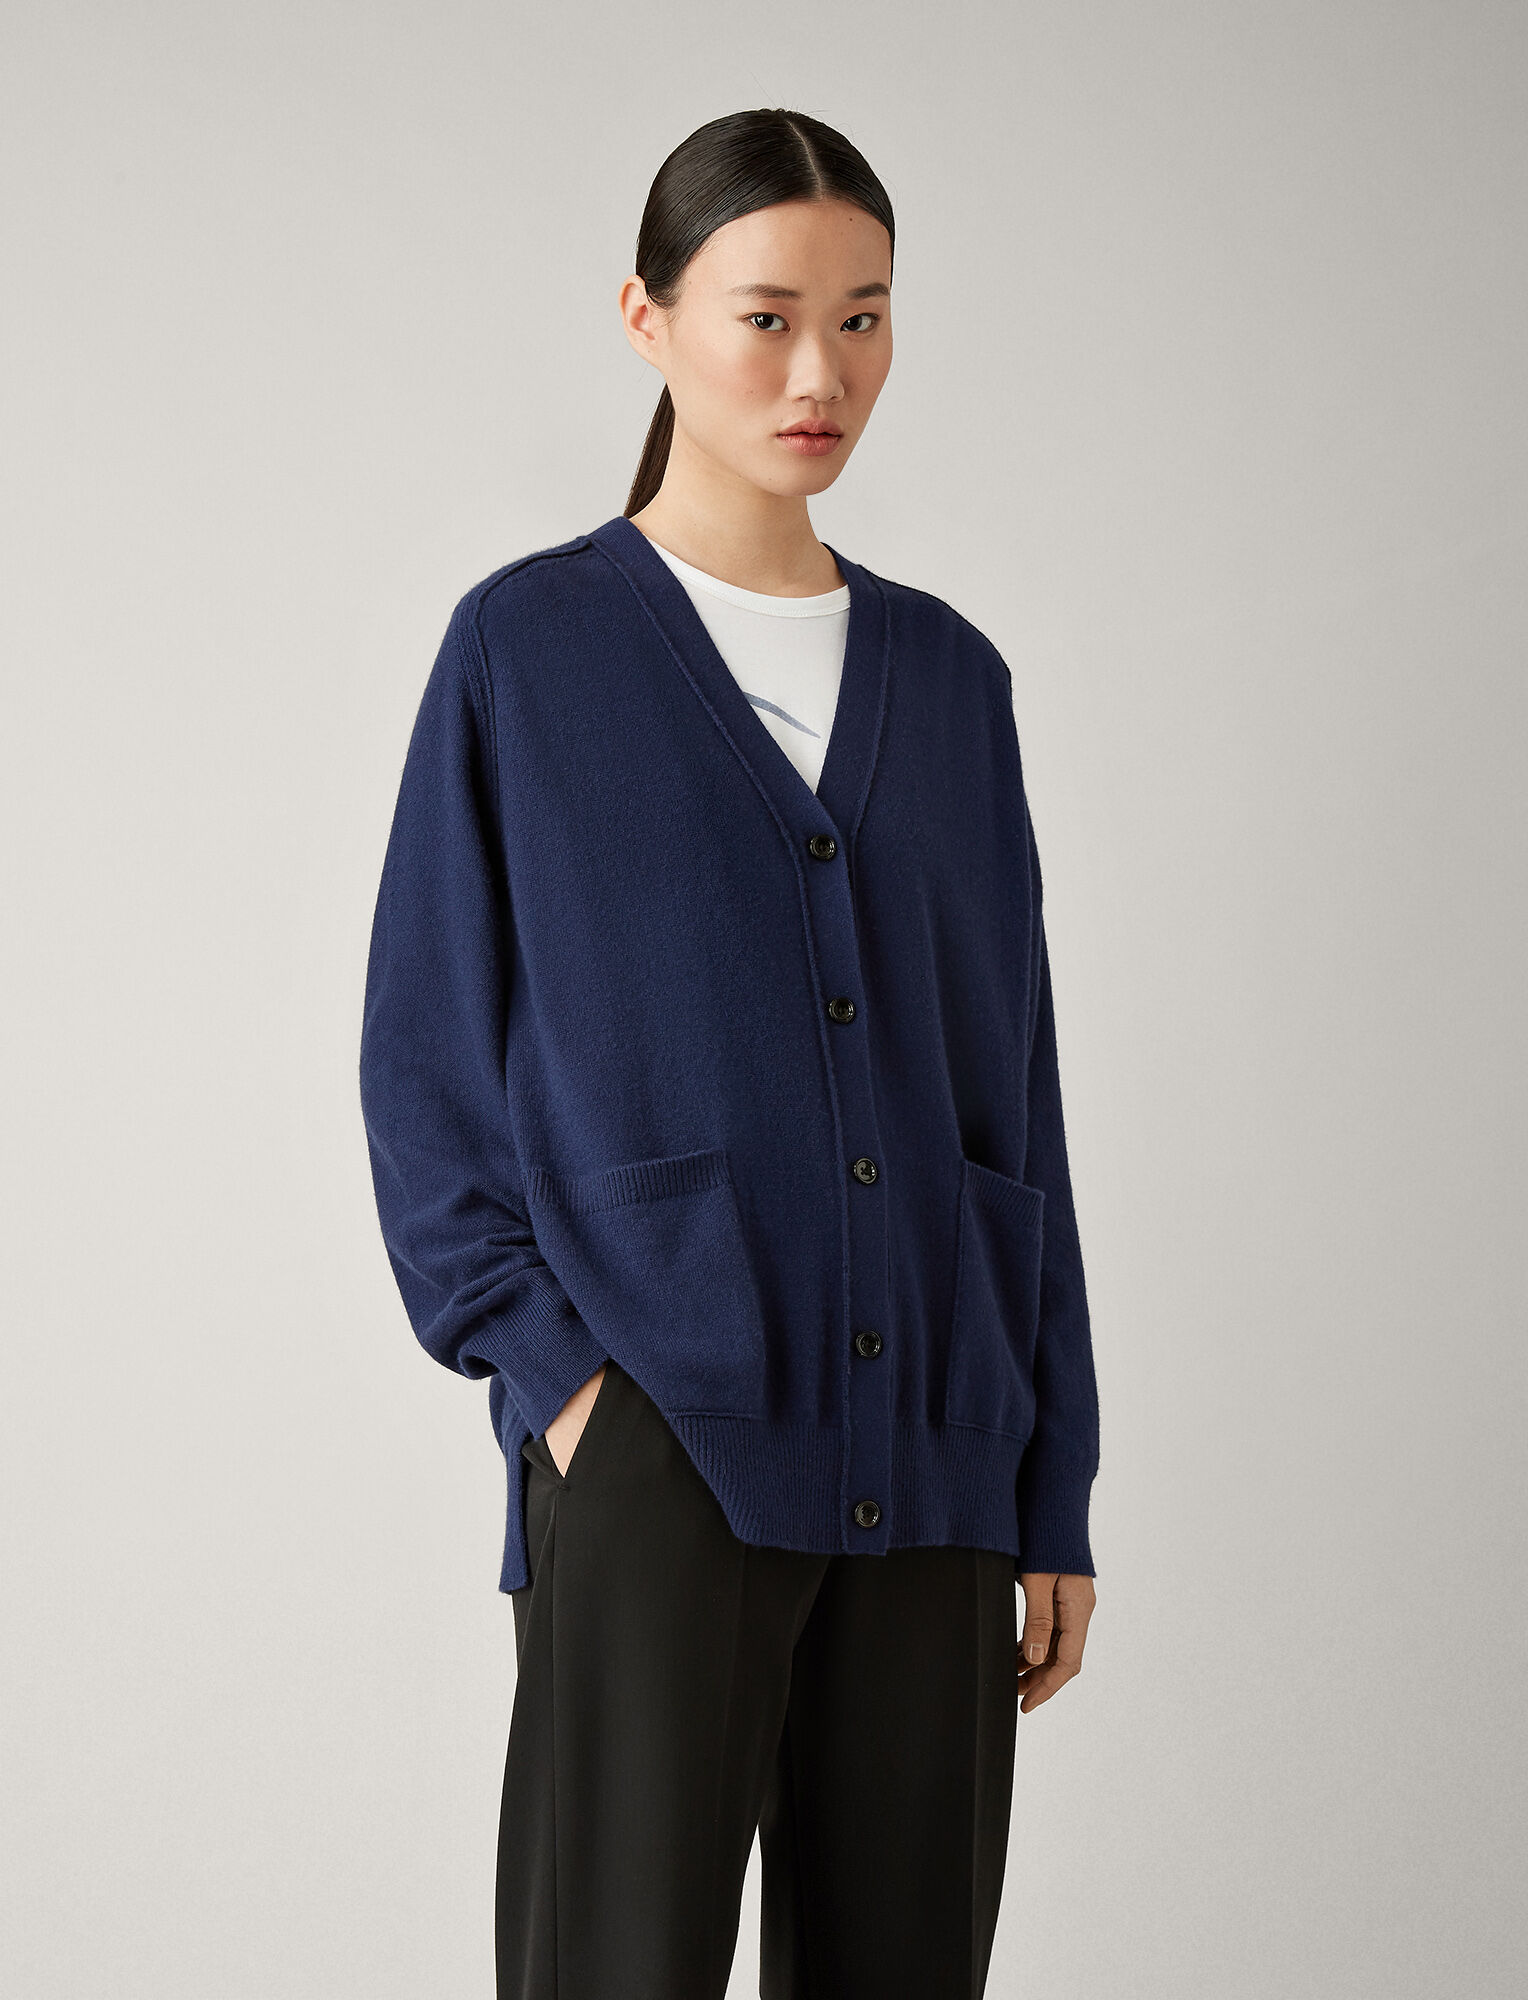 Joseph, Oversized Mongolian Cashmere Cardigan, in ROYAL BLUE